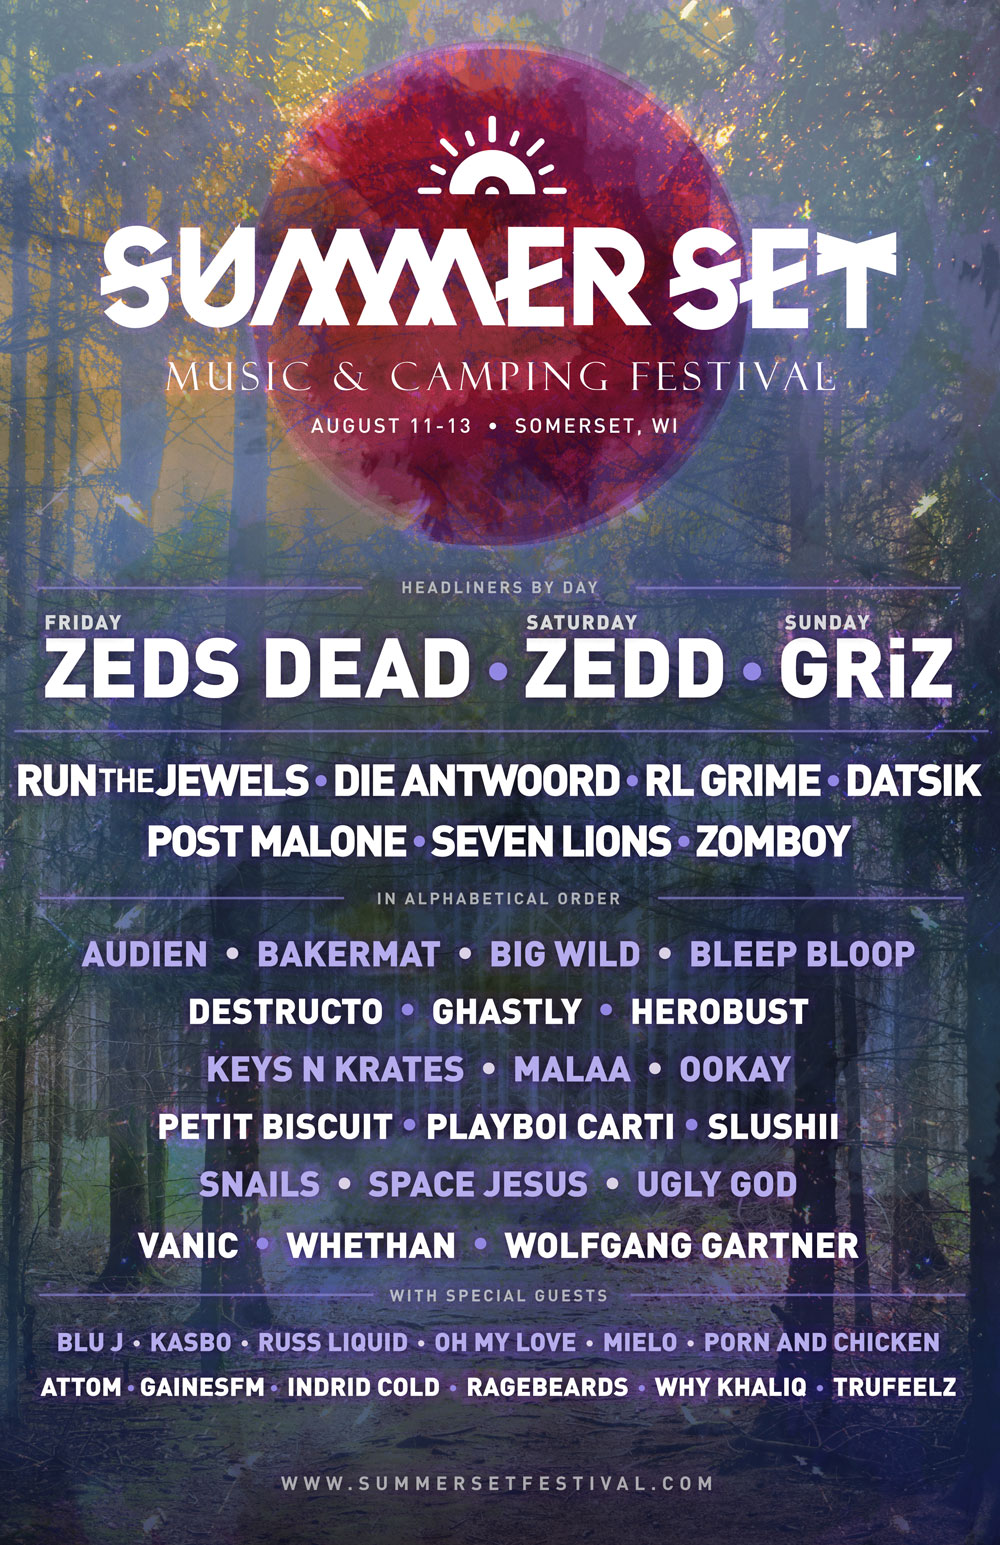 ssmf 2017 flyer 96e12c8d Win tickets to Summer Set Music Festival 2017